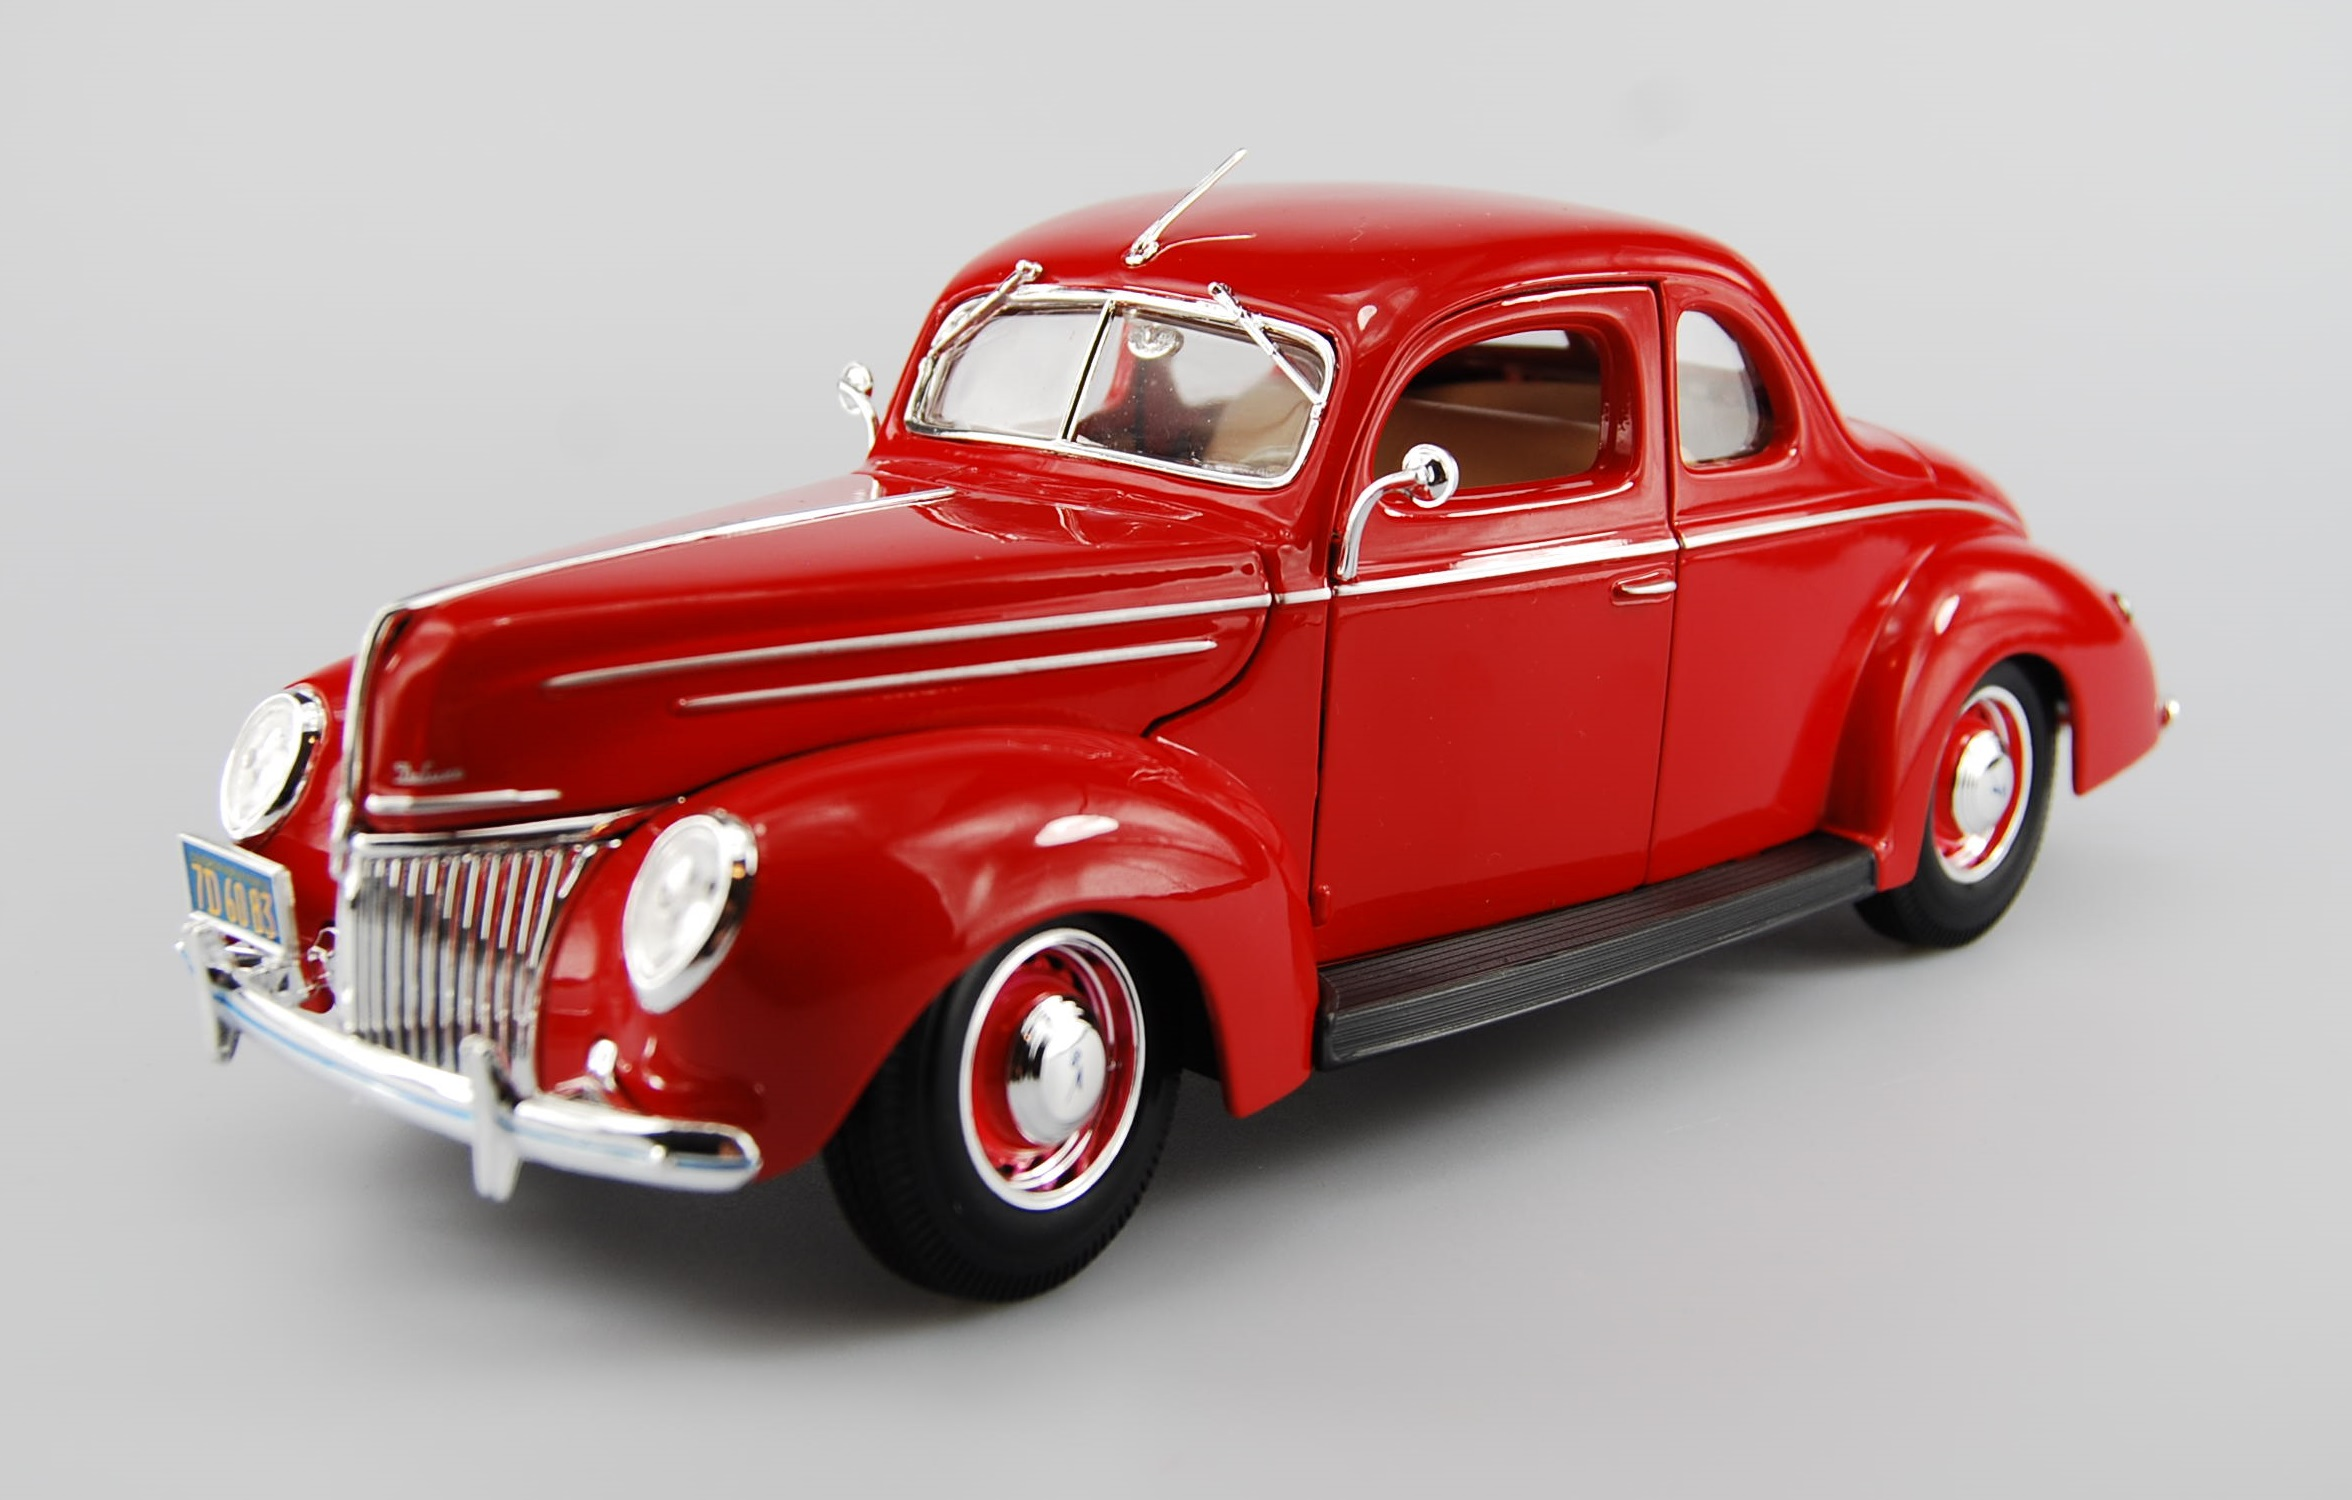 MAISTO 1939 FORD DELUXE rot SPECIAL EDITION 1 18 DIE CAST METAL 24cm